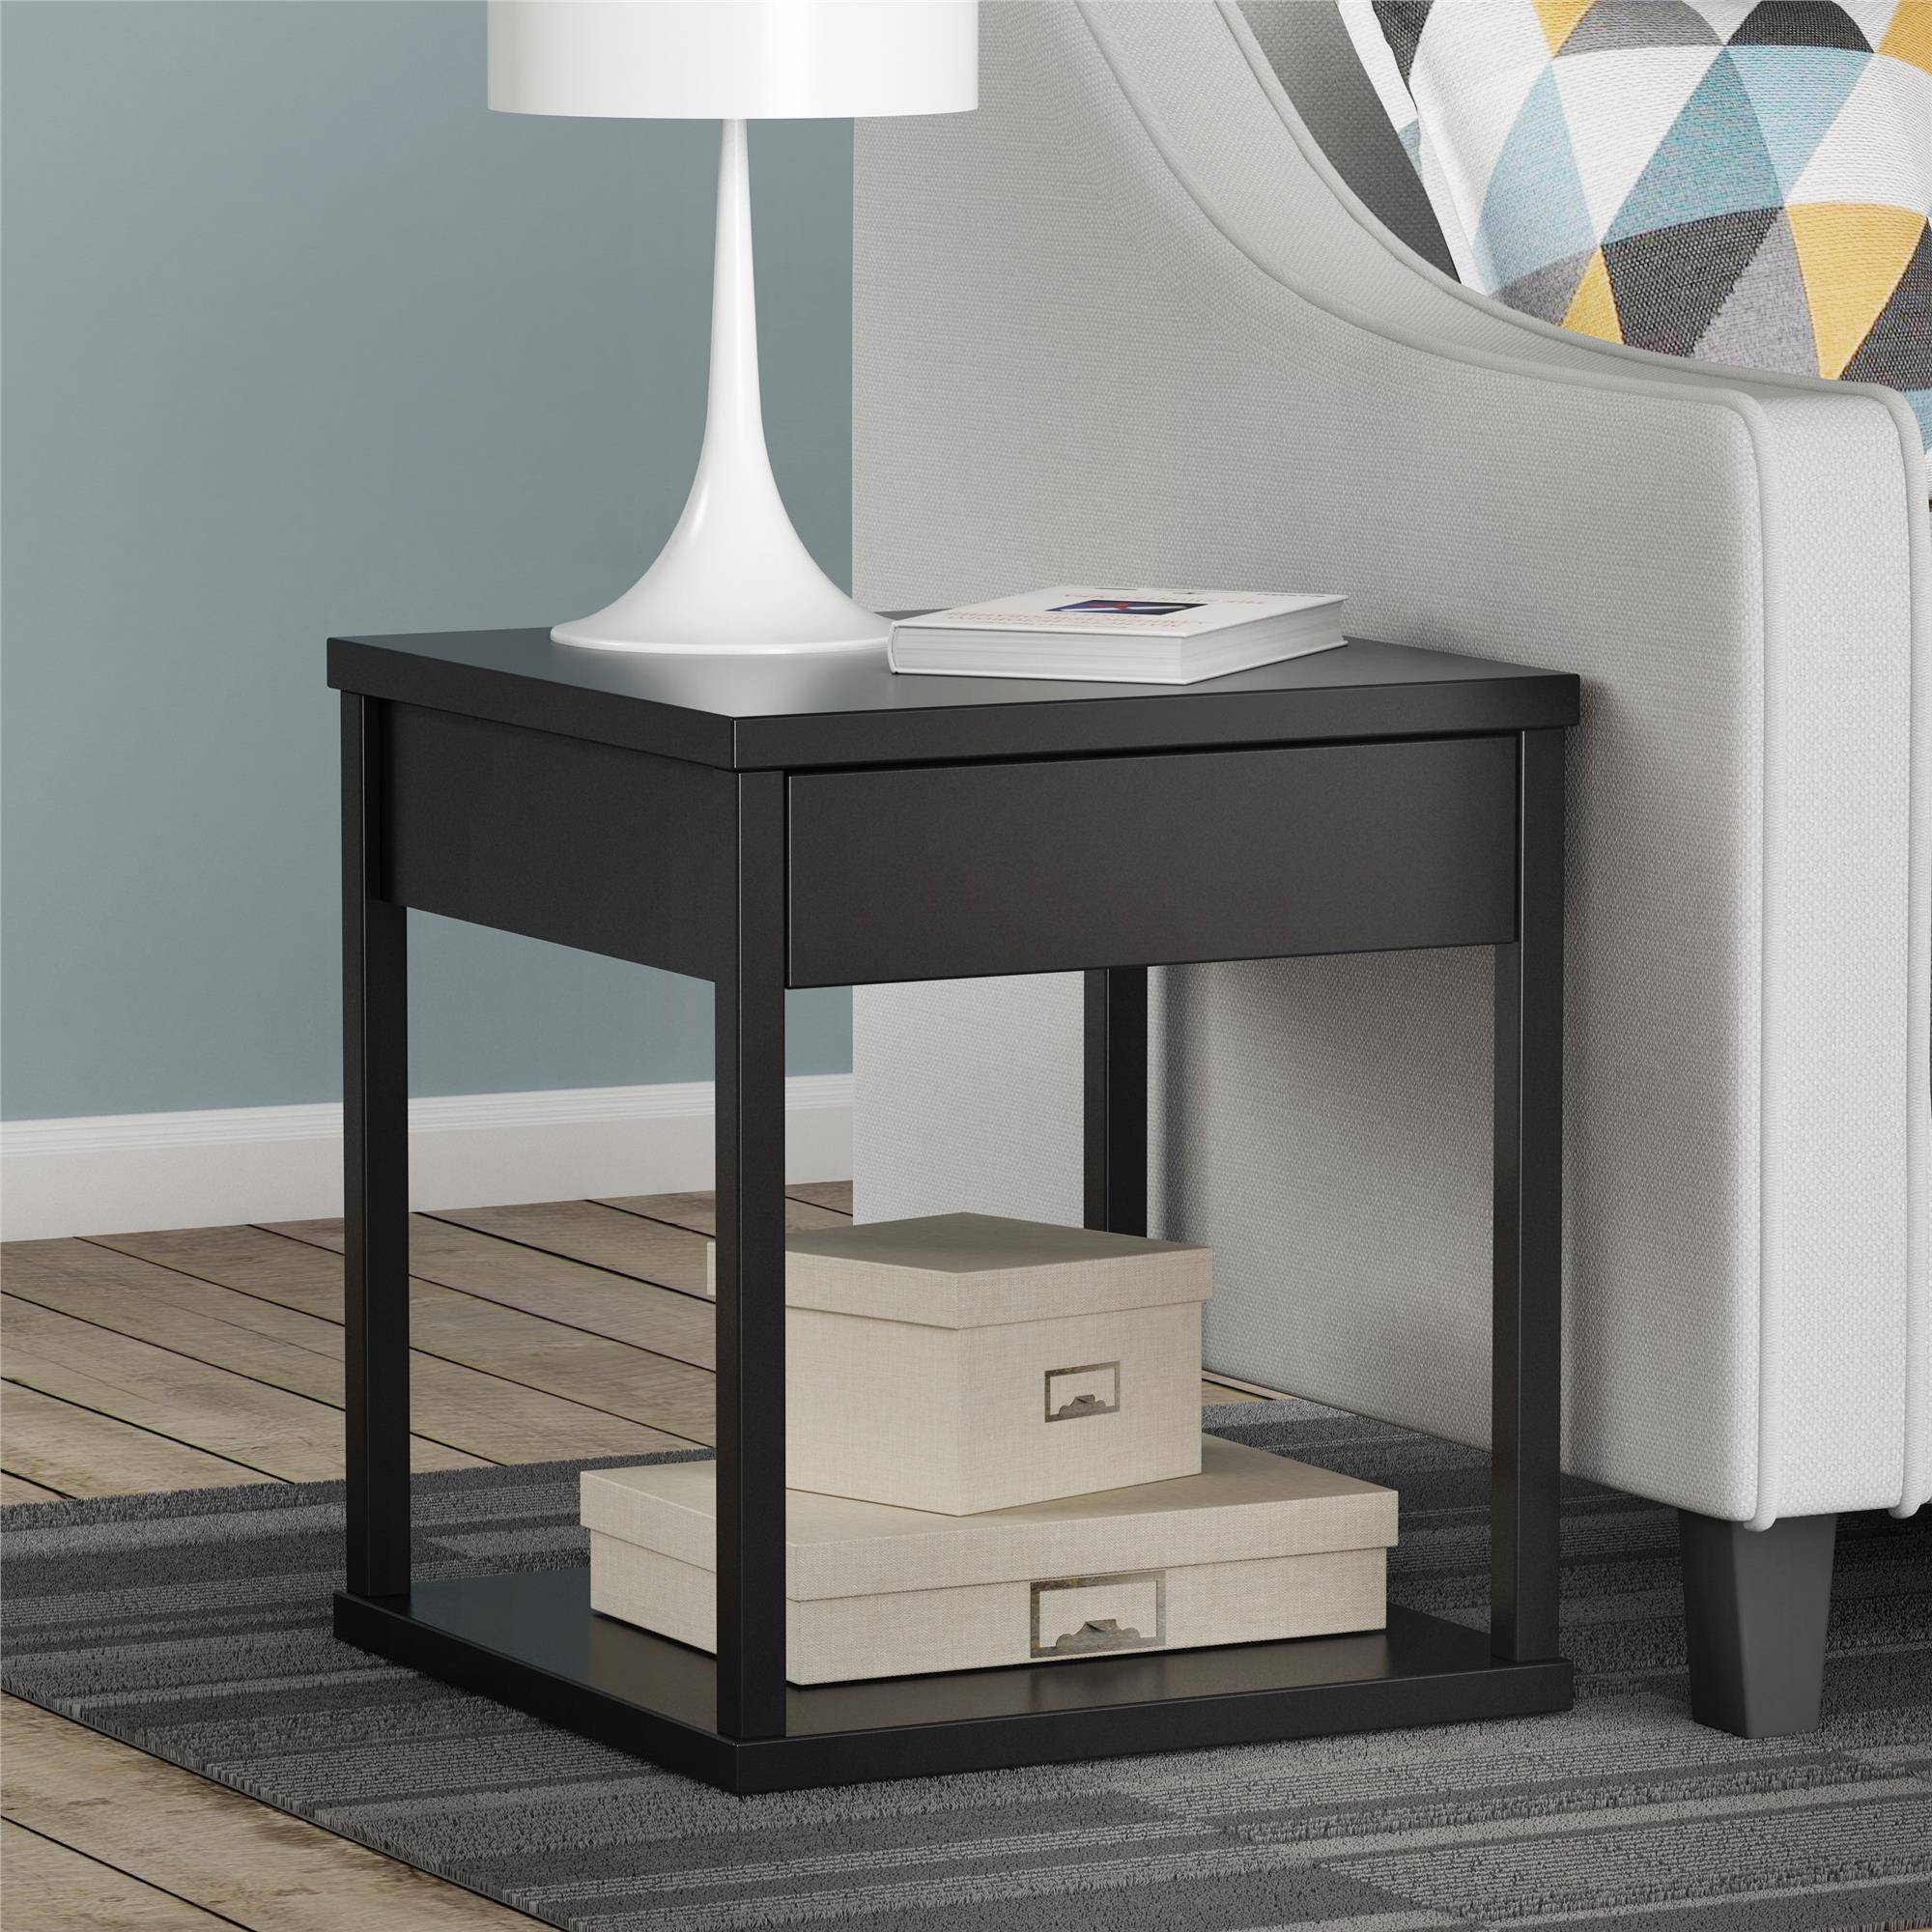 Mainstays Parsons End Table with Drawer, Multiple Colors